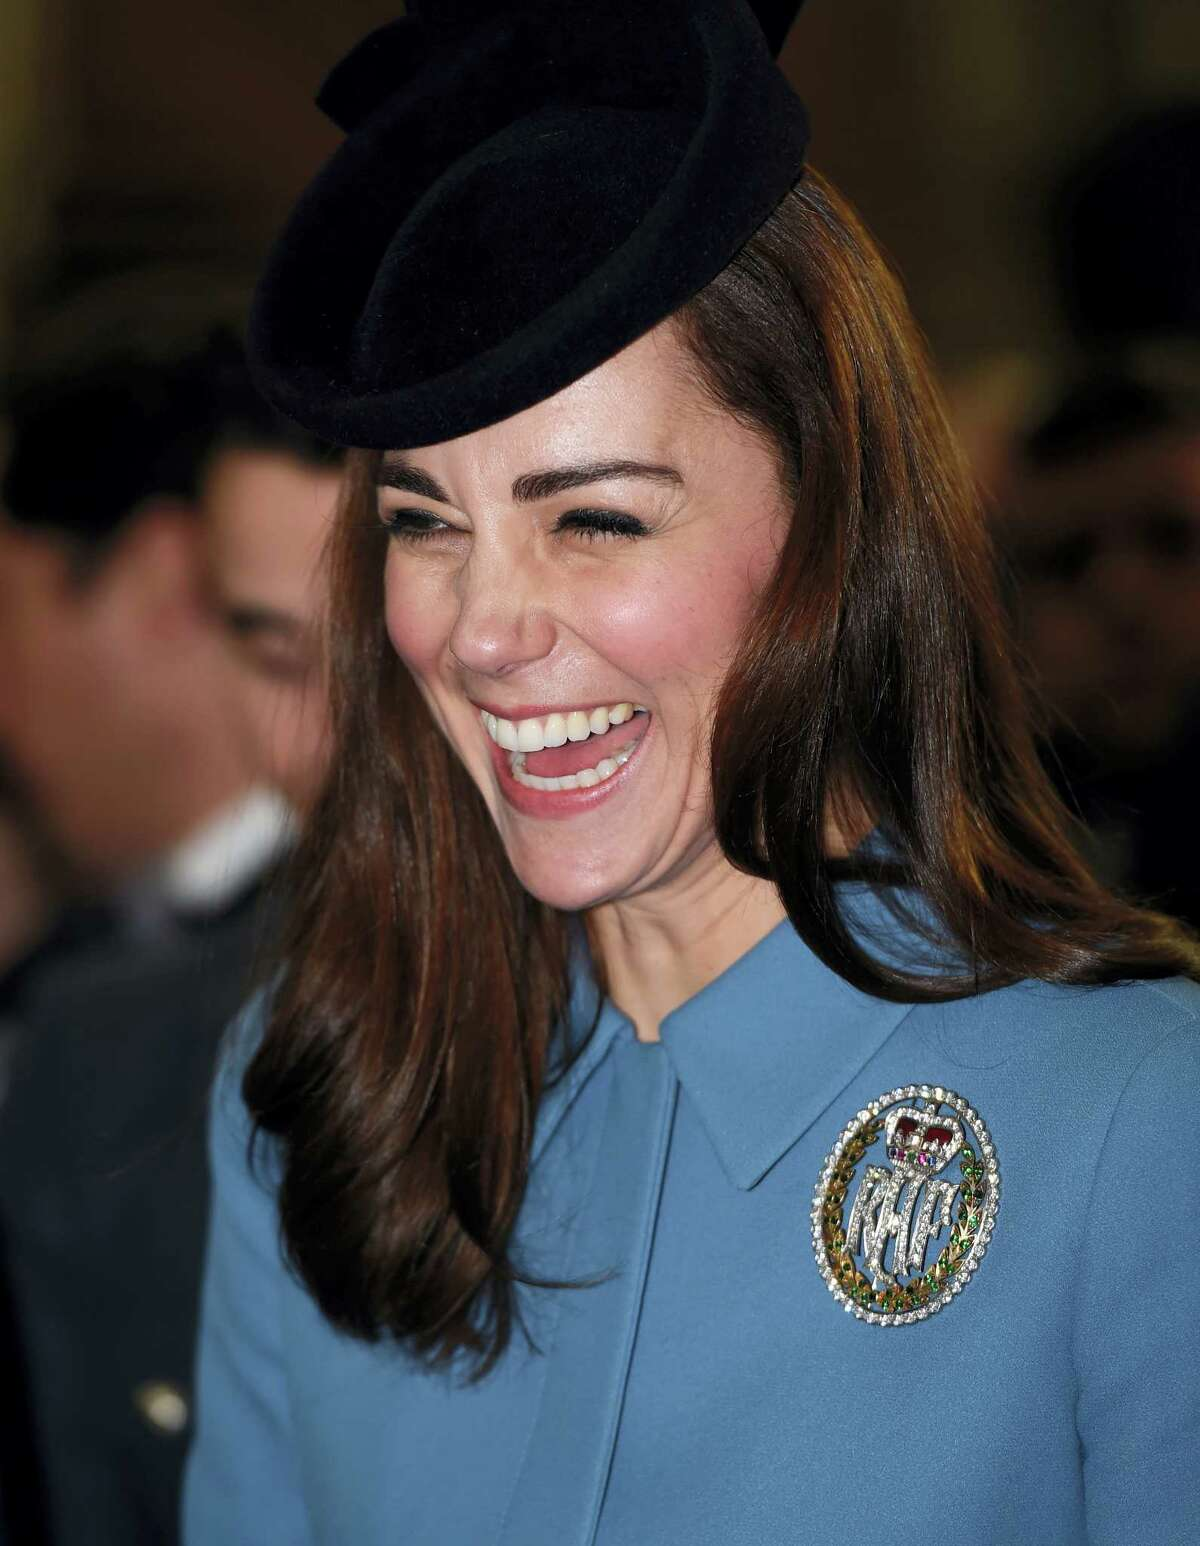 Britain's Kate, the Duchess of Cambridge reacts, as she attends a service to mark the 75th anniversary year of the RAF Air Cadets, in London on Feb. 7, 2016.